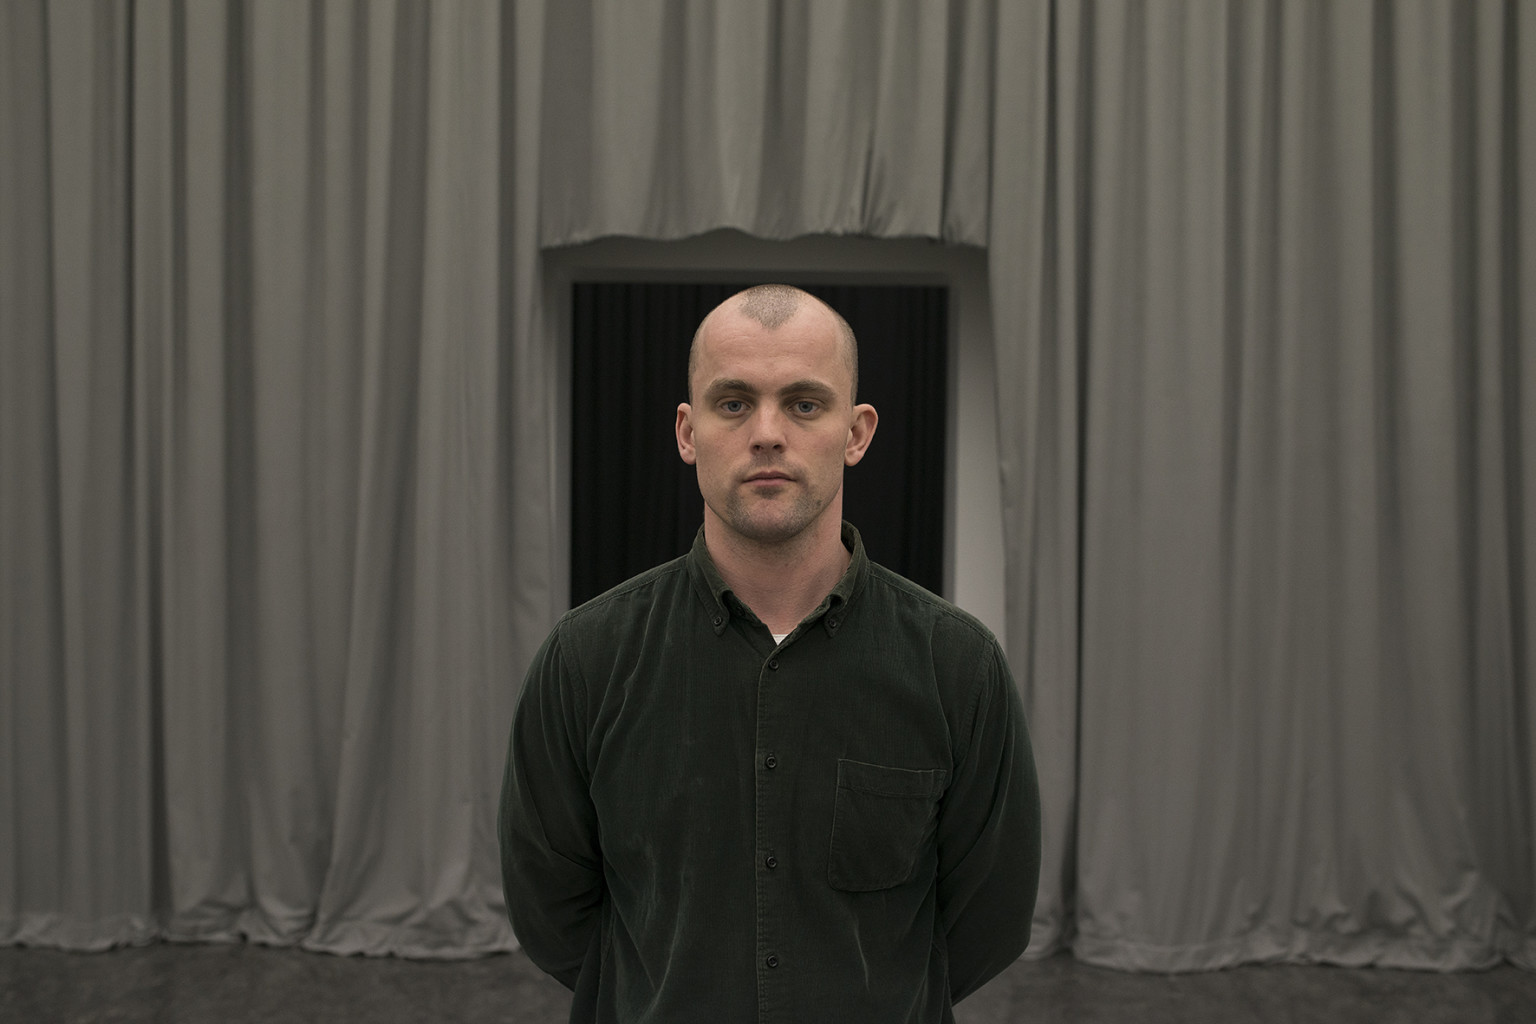 James Richards, selected for Wales in Venice 2017